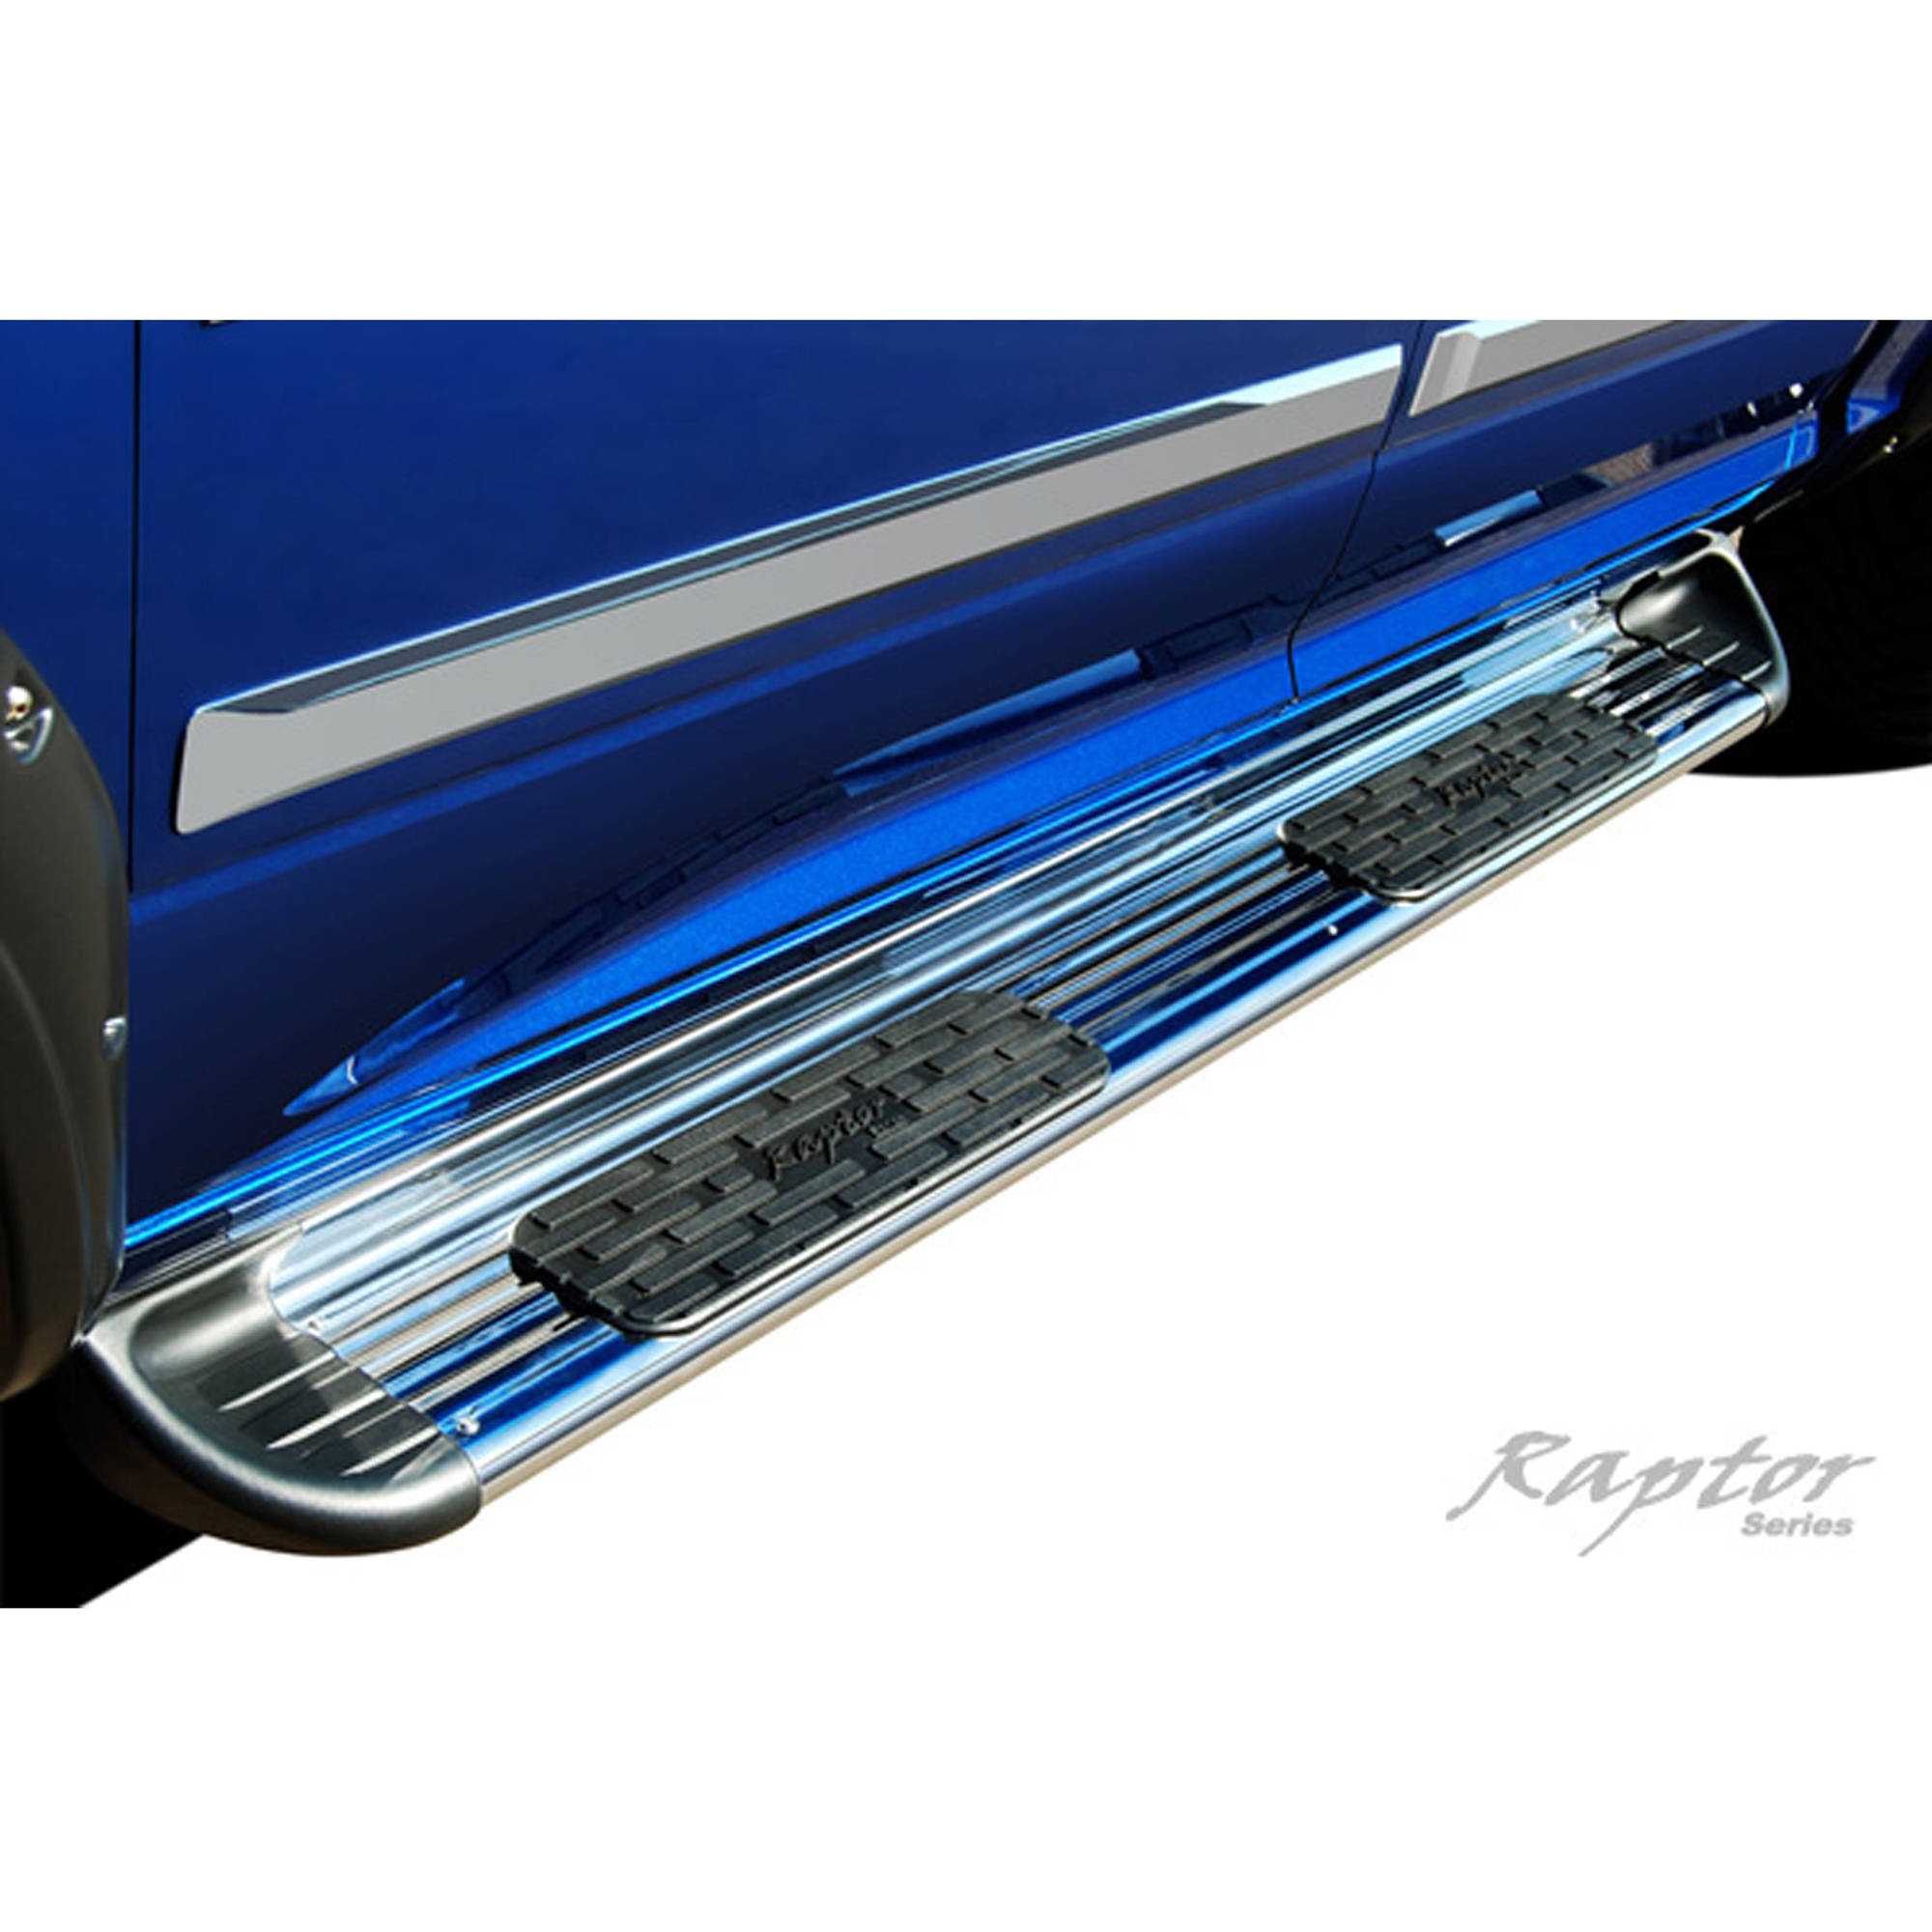 "Raptor Series 14-15 Chevy Silverado 1500/2500/3500 Double Cab 7"" Running Board, Stainless Steel"